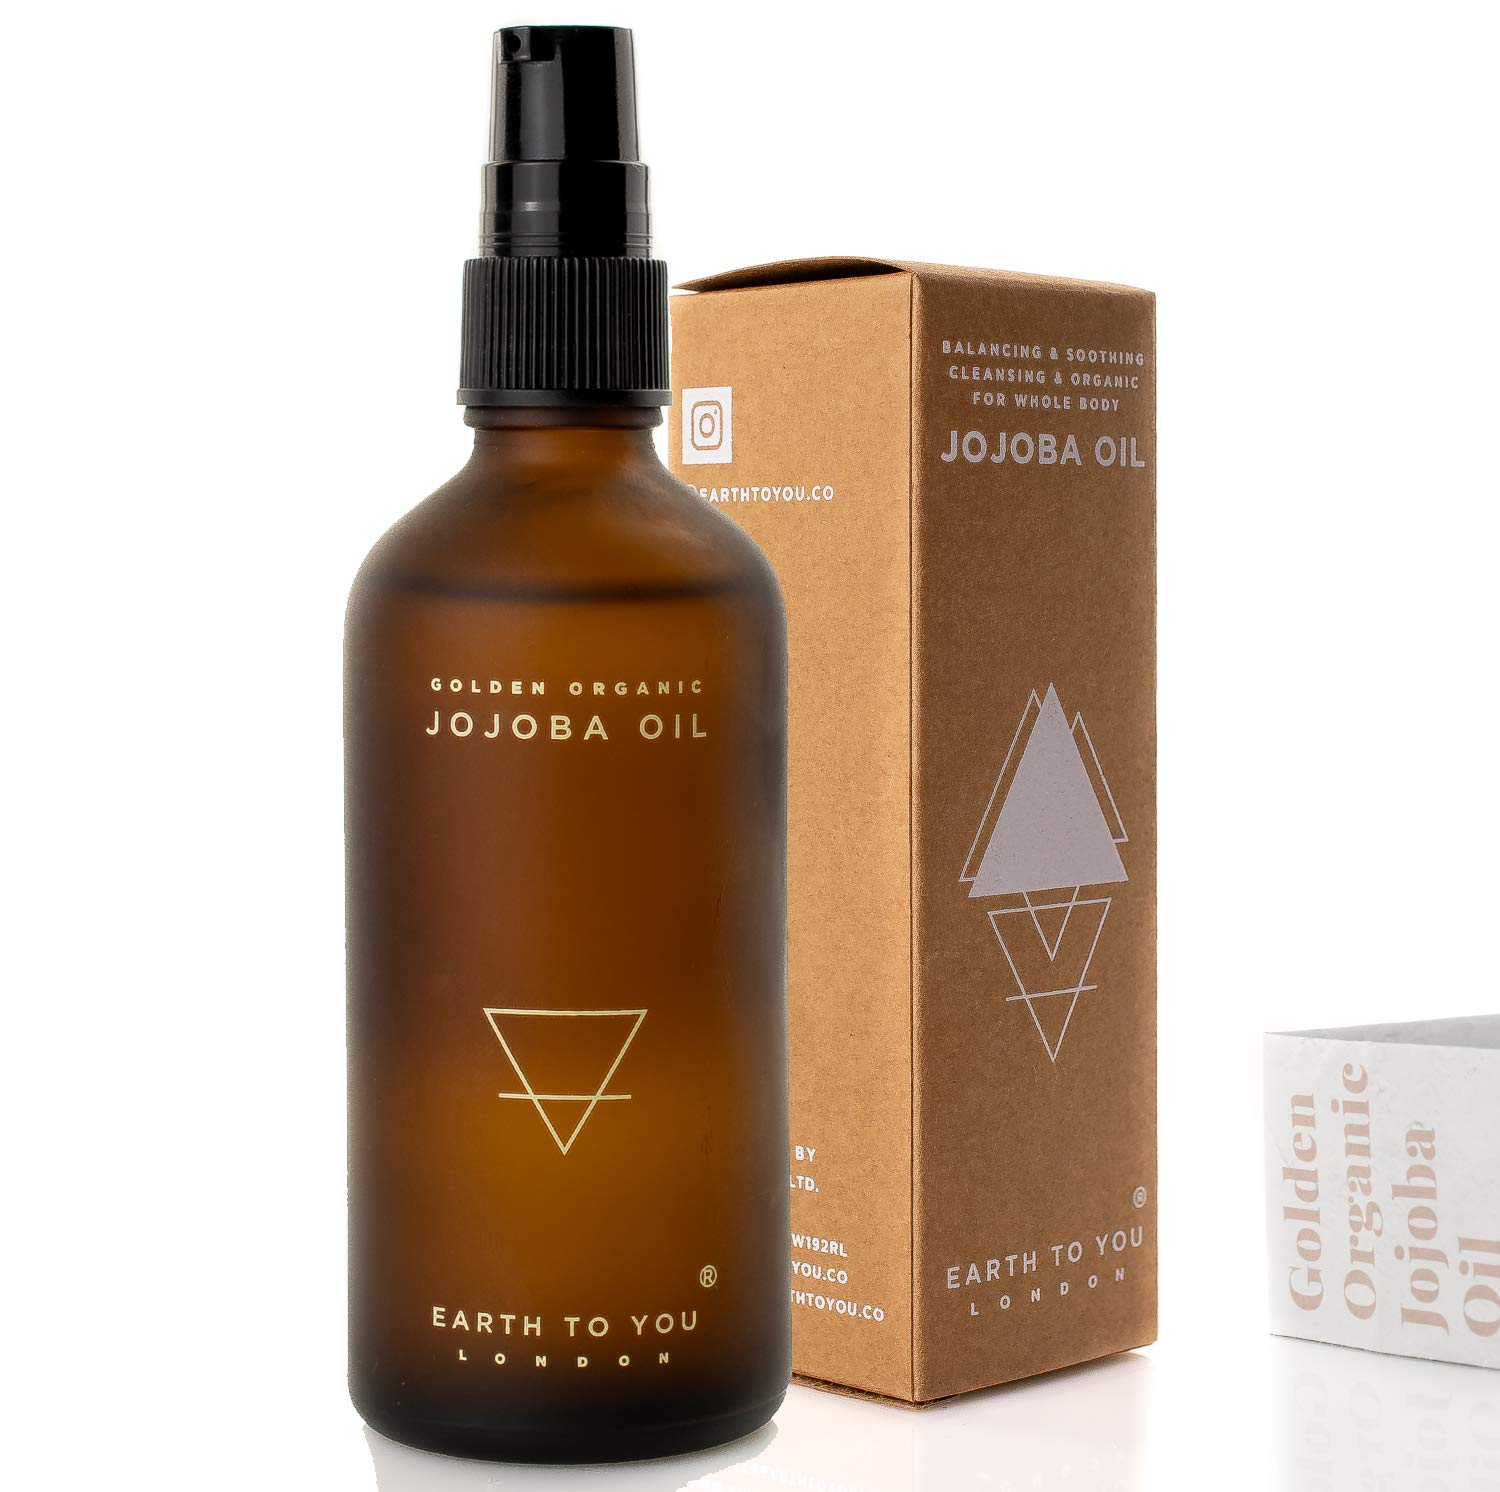 Golden Organic Jojoba Oil For Face, Body, Stretch Marks, Sensitive Skin. Cold Pressed, Pure By Earth To You London